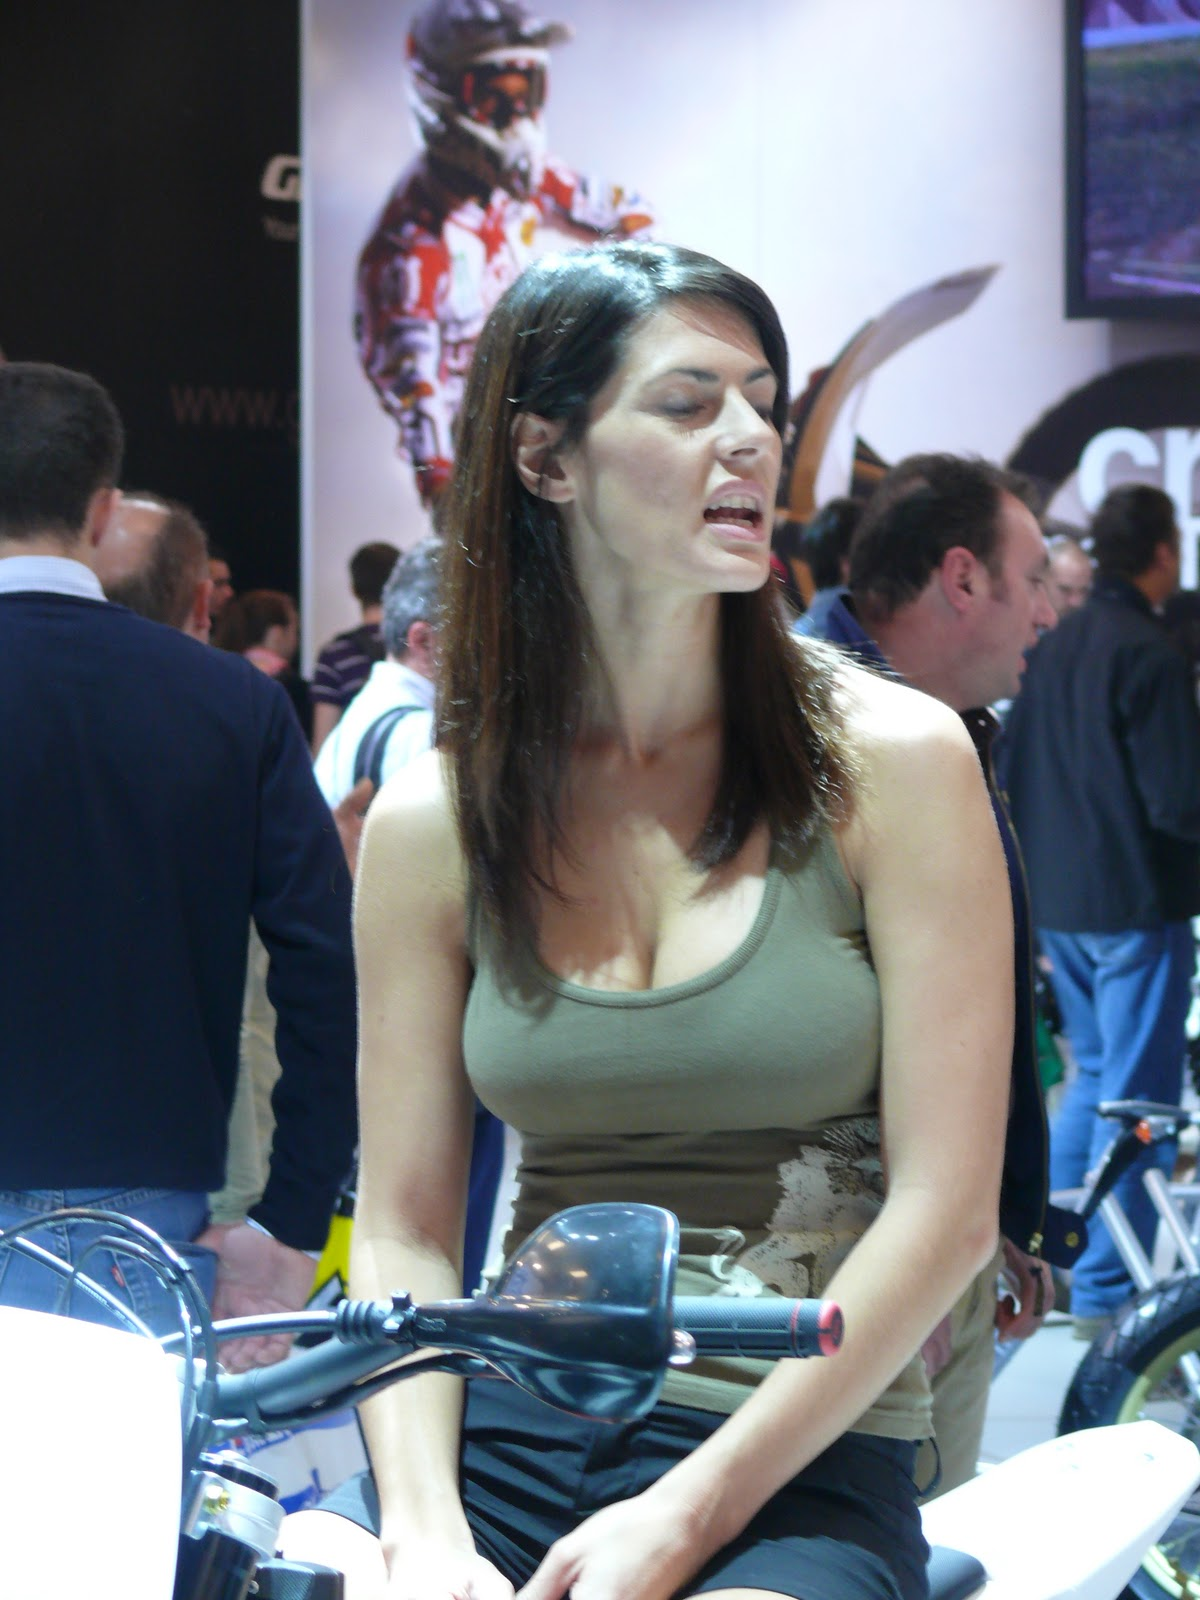 Big Breast Girls Some Candid At Auto Show-7644